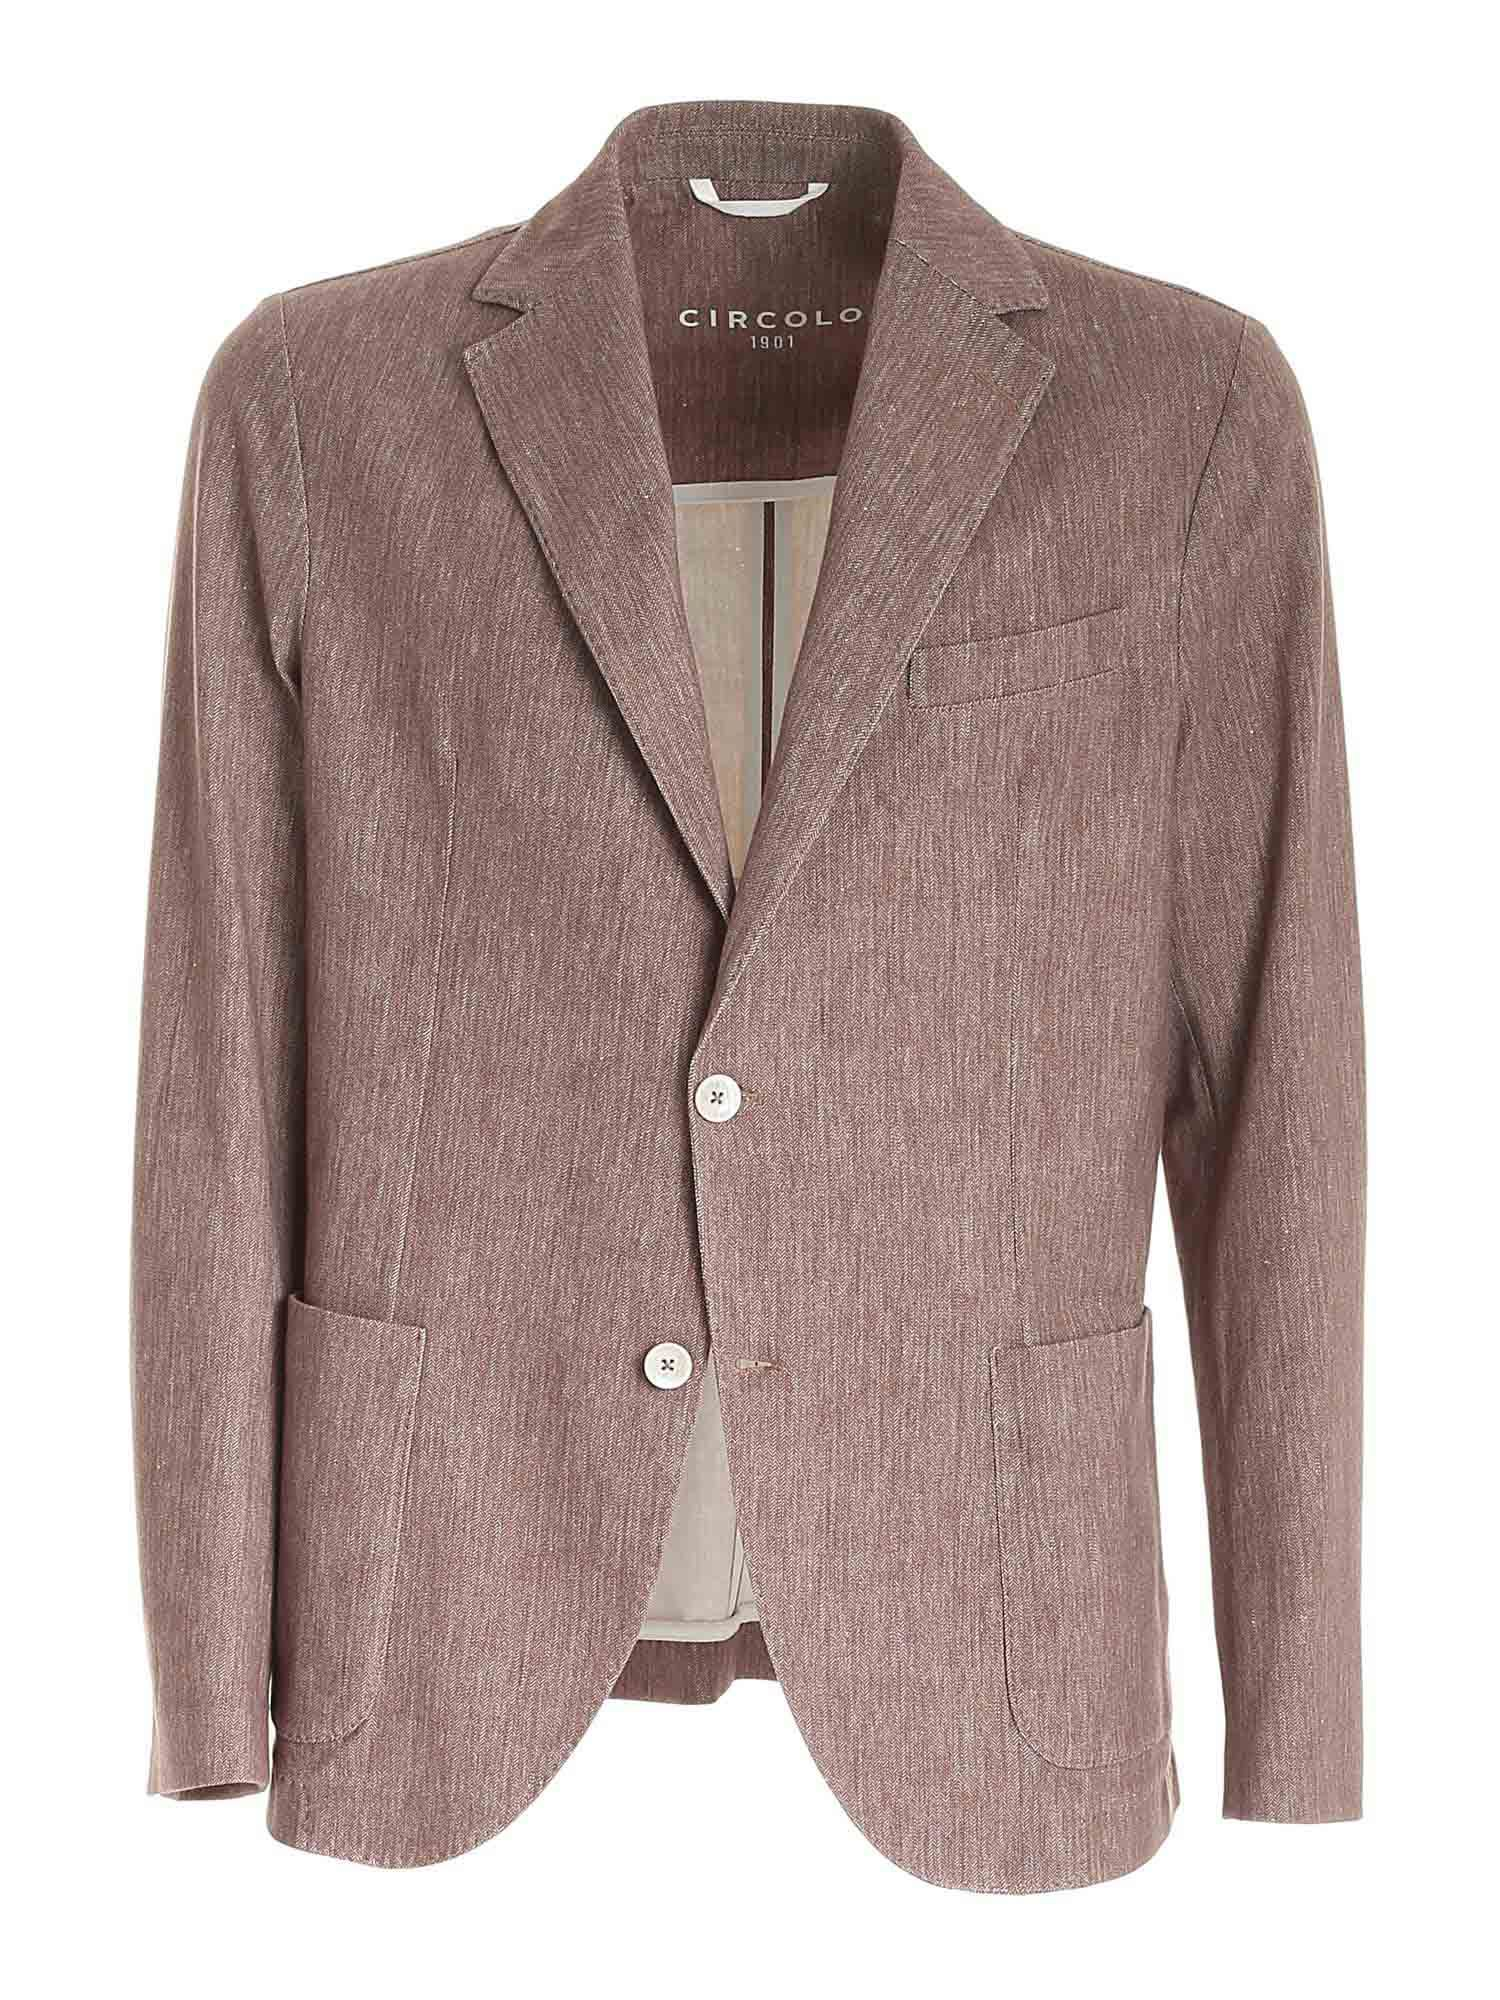 Circolo 1901 Cottons SINGLE-BREASTED JACKET IN BROWN